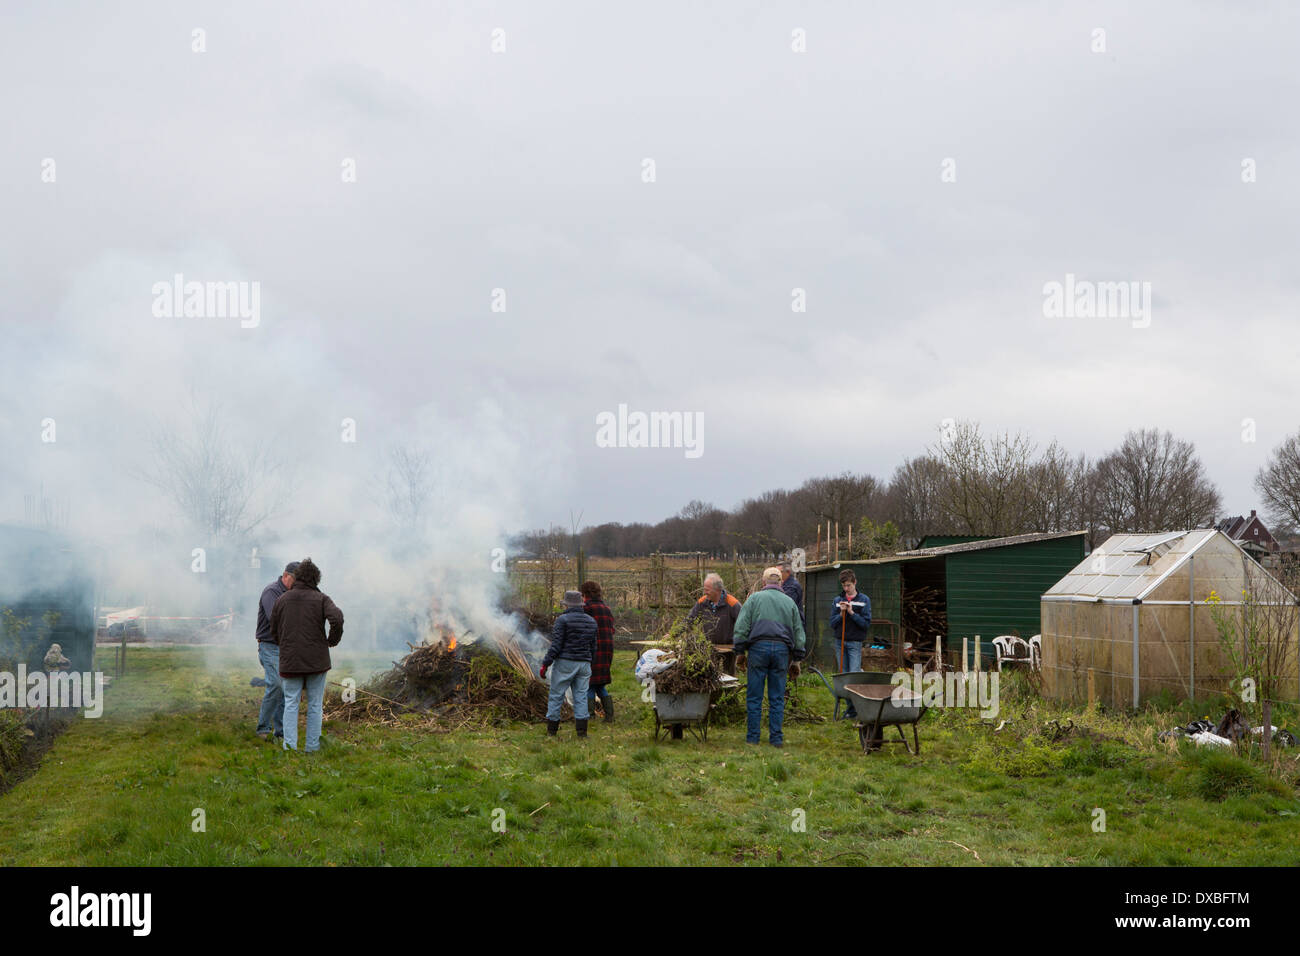 Cleaning day in the allotment garden. Group of gardeners standing around a fire where rubbish is being burned. Stock Photo